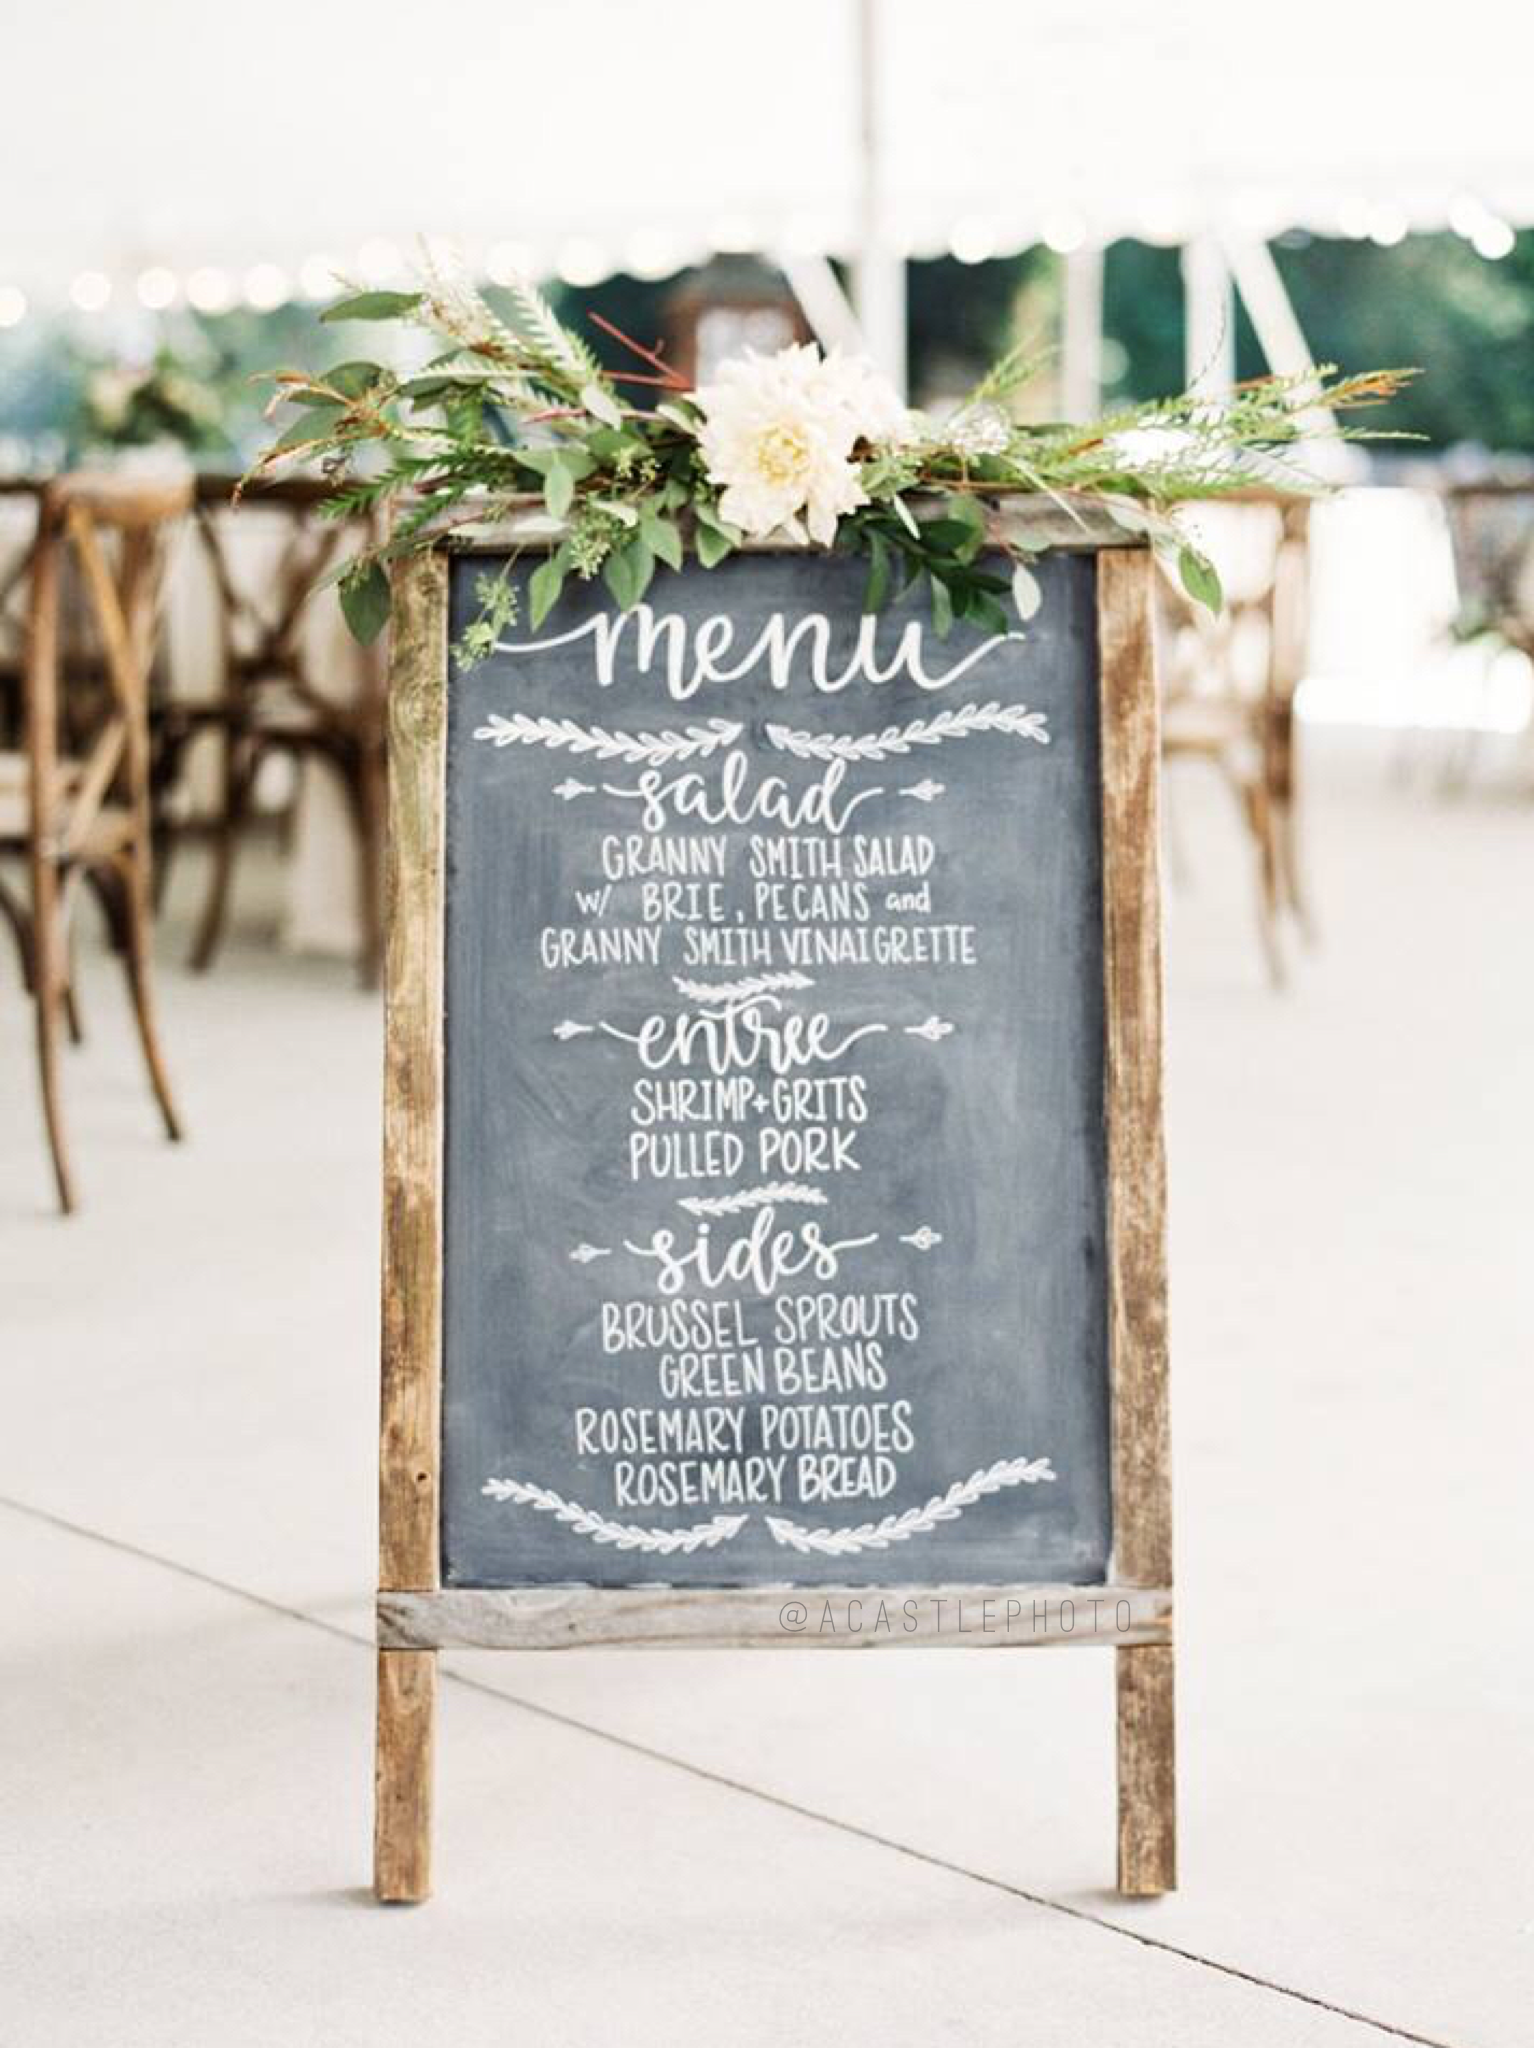 Wedding Signage - Wedding signs are a necessity, but they don't have to be boring. They should add to the beauty of your day.Your guests will appreciate the intentionality behind these Pinterest-worthy, informational details!